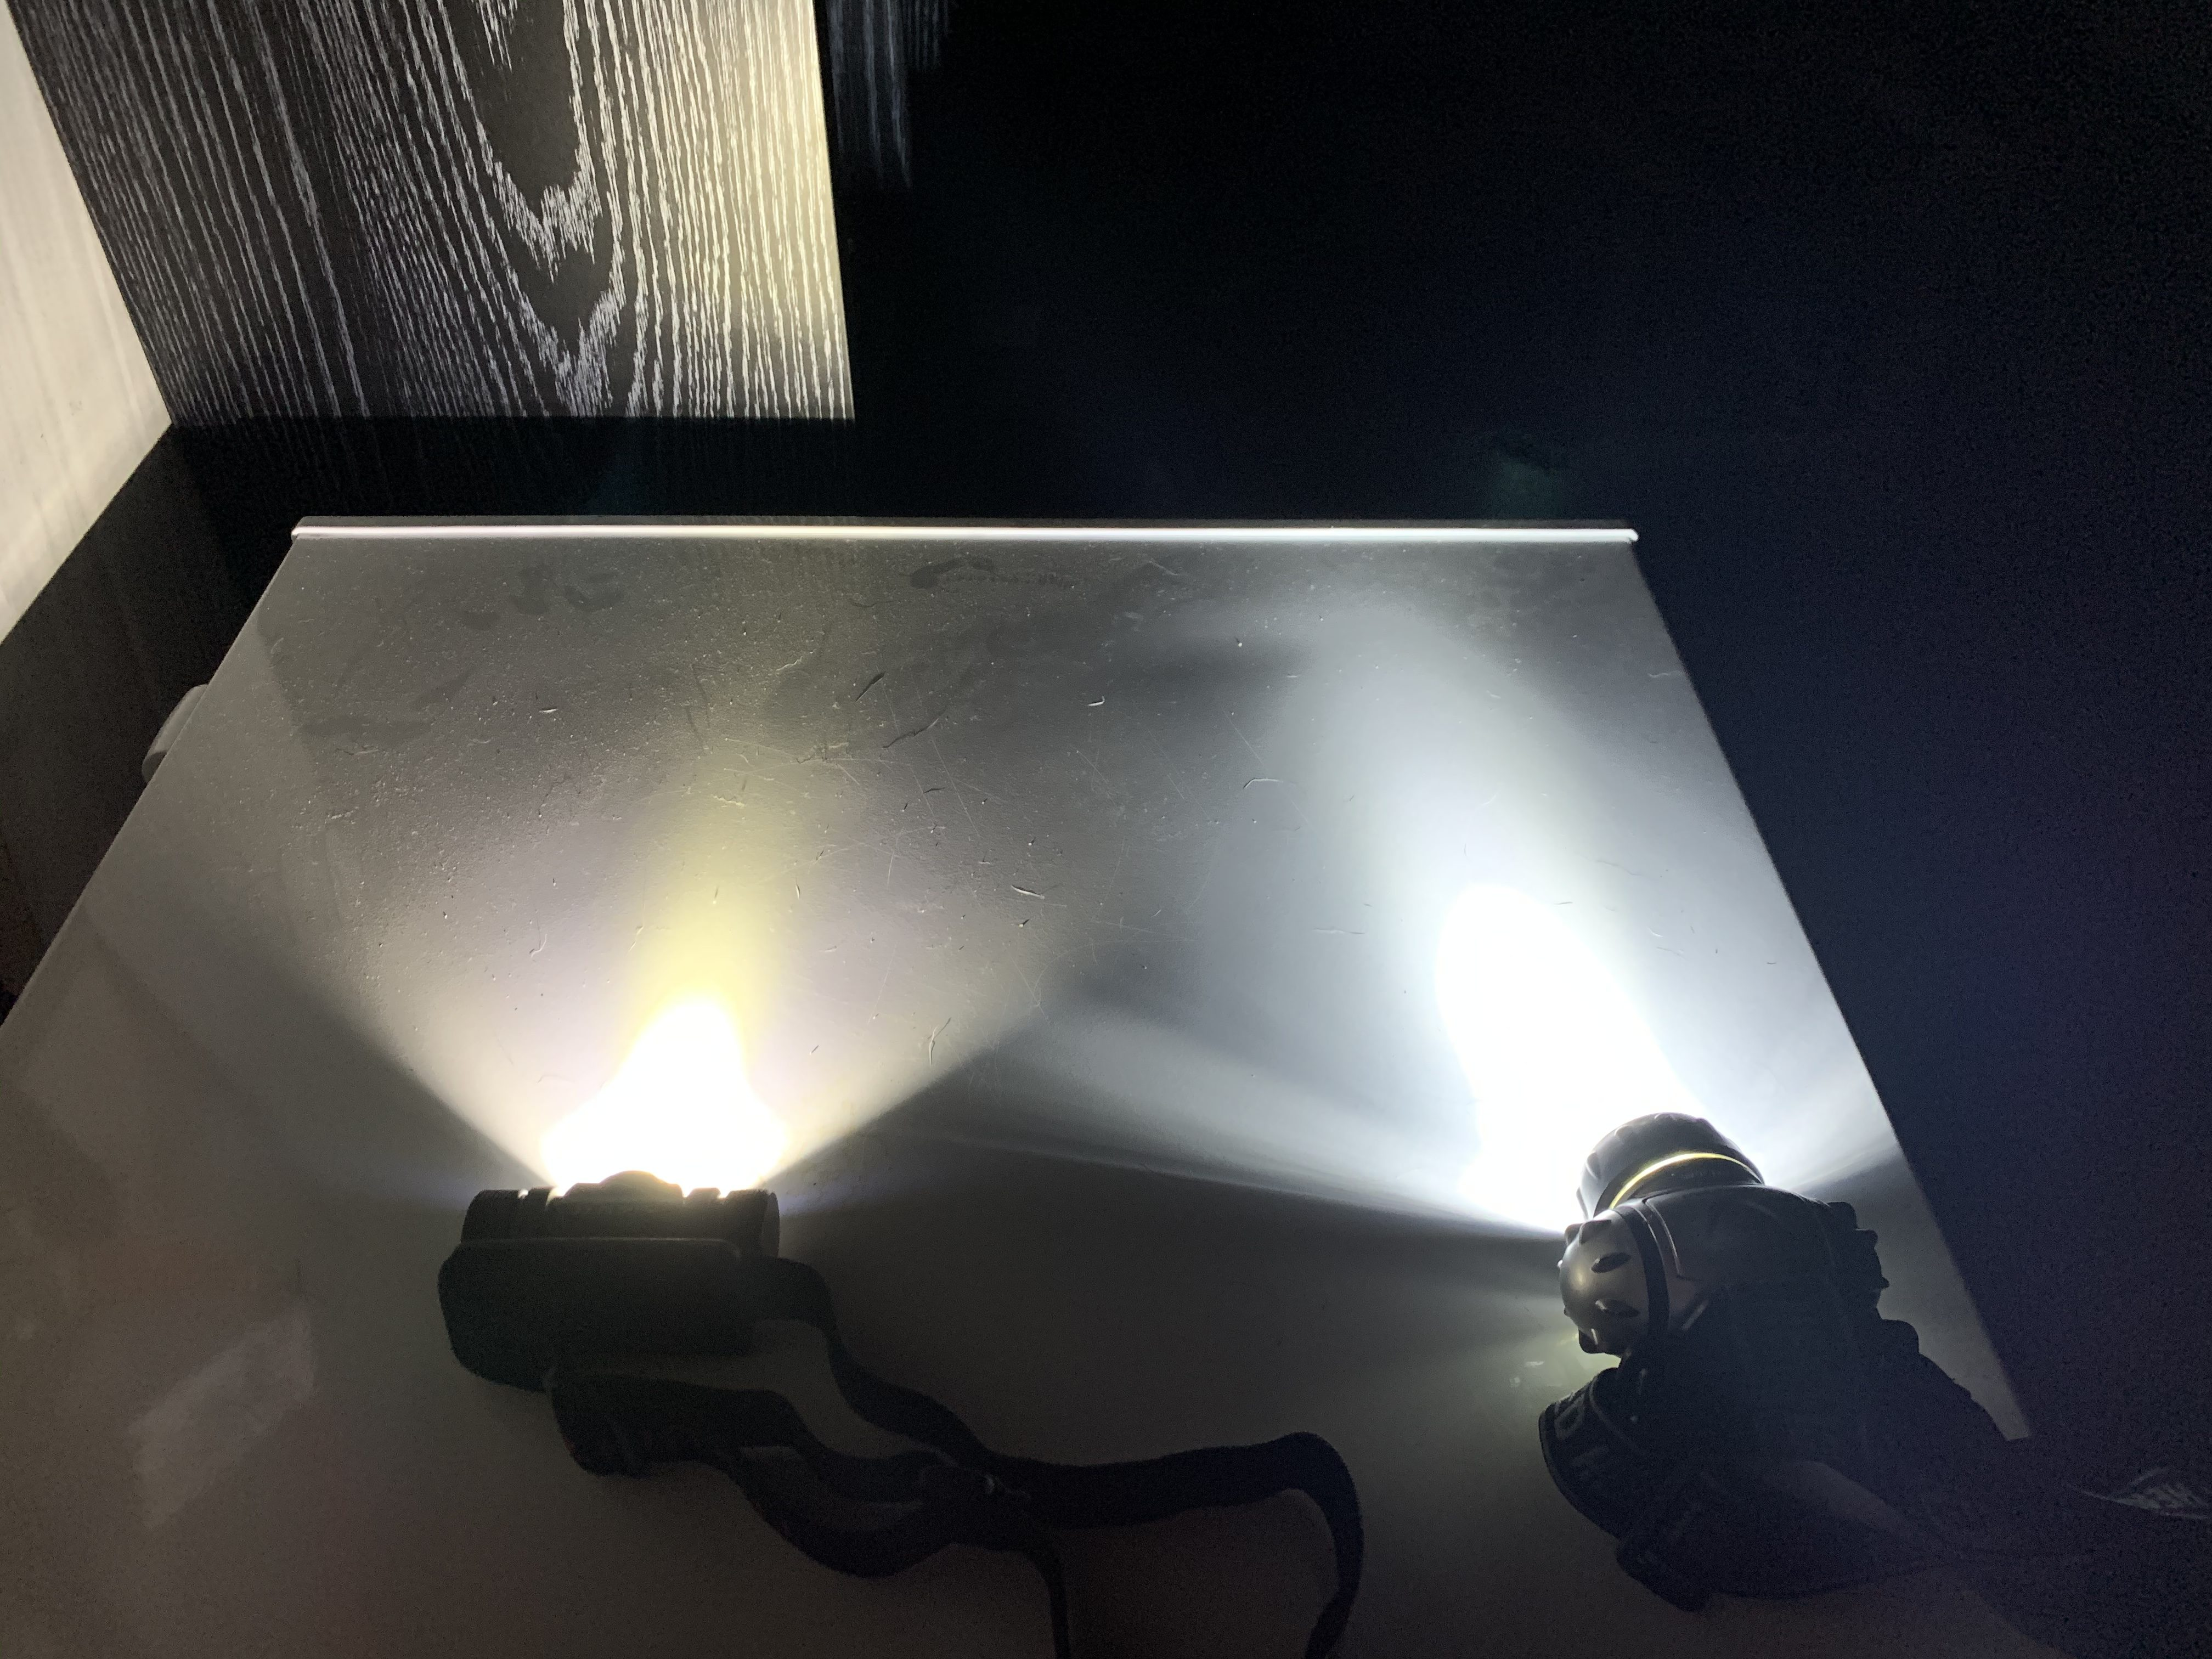 Thrunite TH20 on high power compared to a normal headlamp